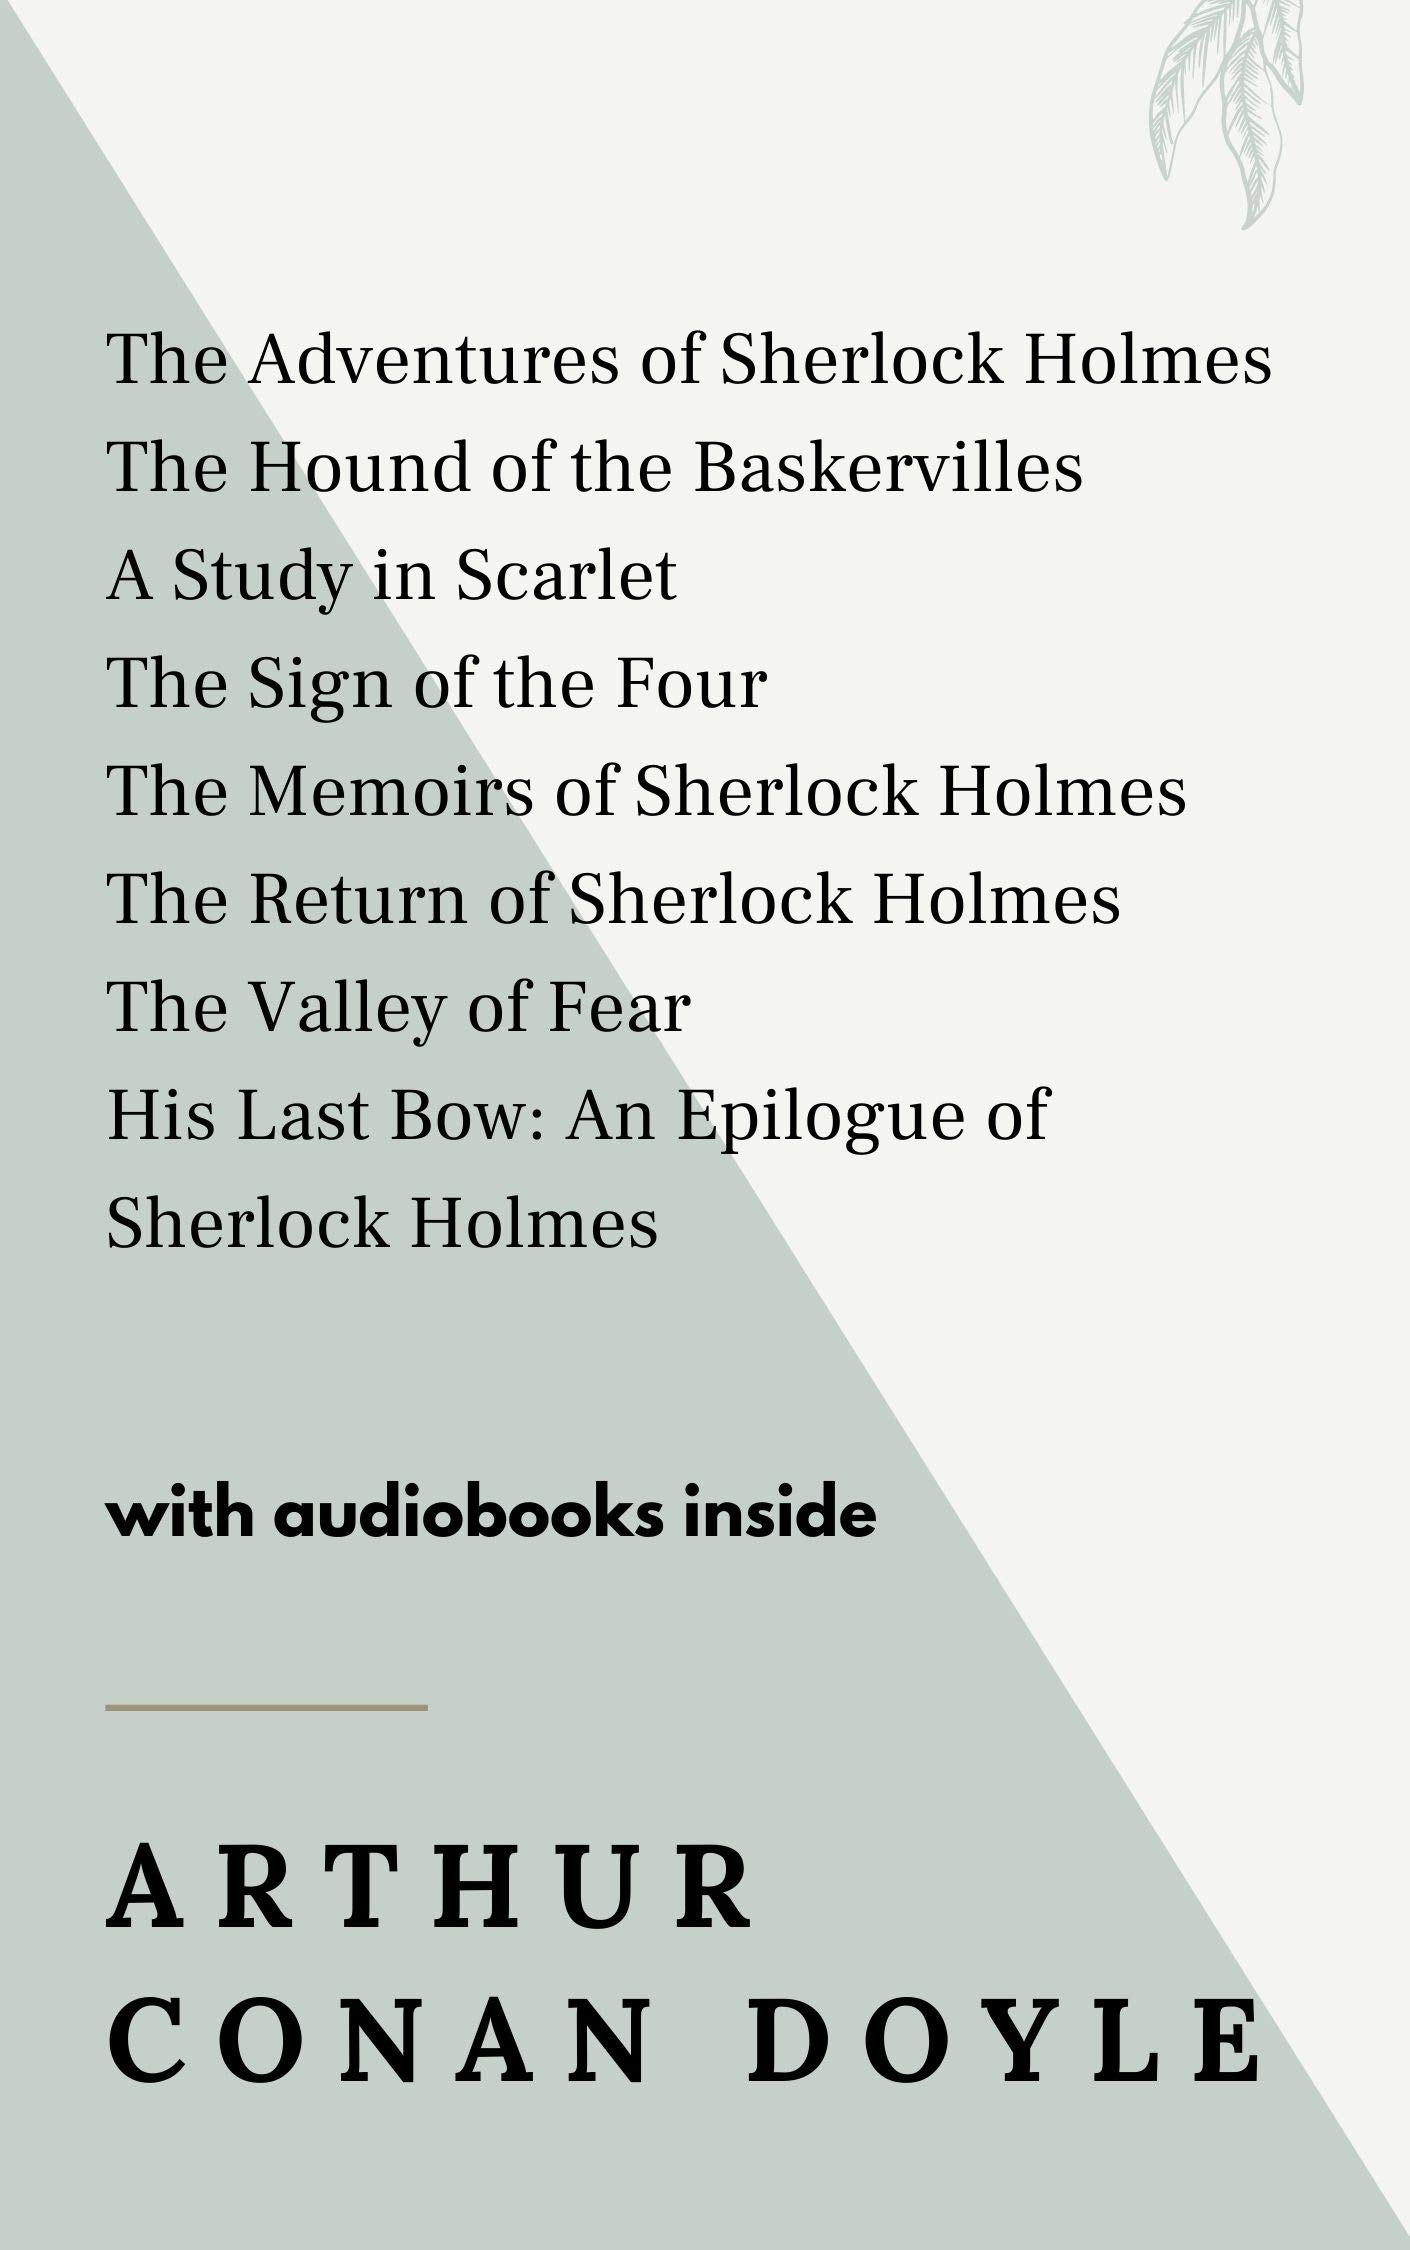 Arthur Conan Doyle: The Adventures of Sherlock Holmes, The Hound of the Baskervilles, A Study in Scarlet, The Sign of the Four, The Memoirs of Sherlock Holmes, and others - WITH AUDIOBOOKS INSIDE